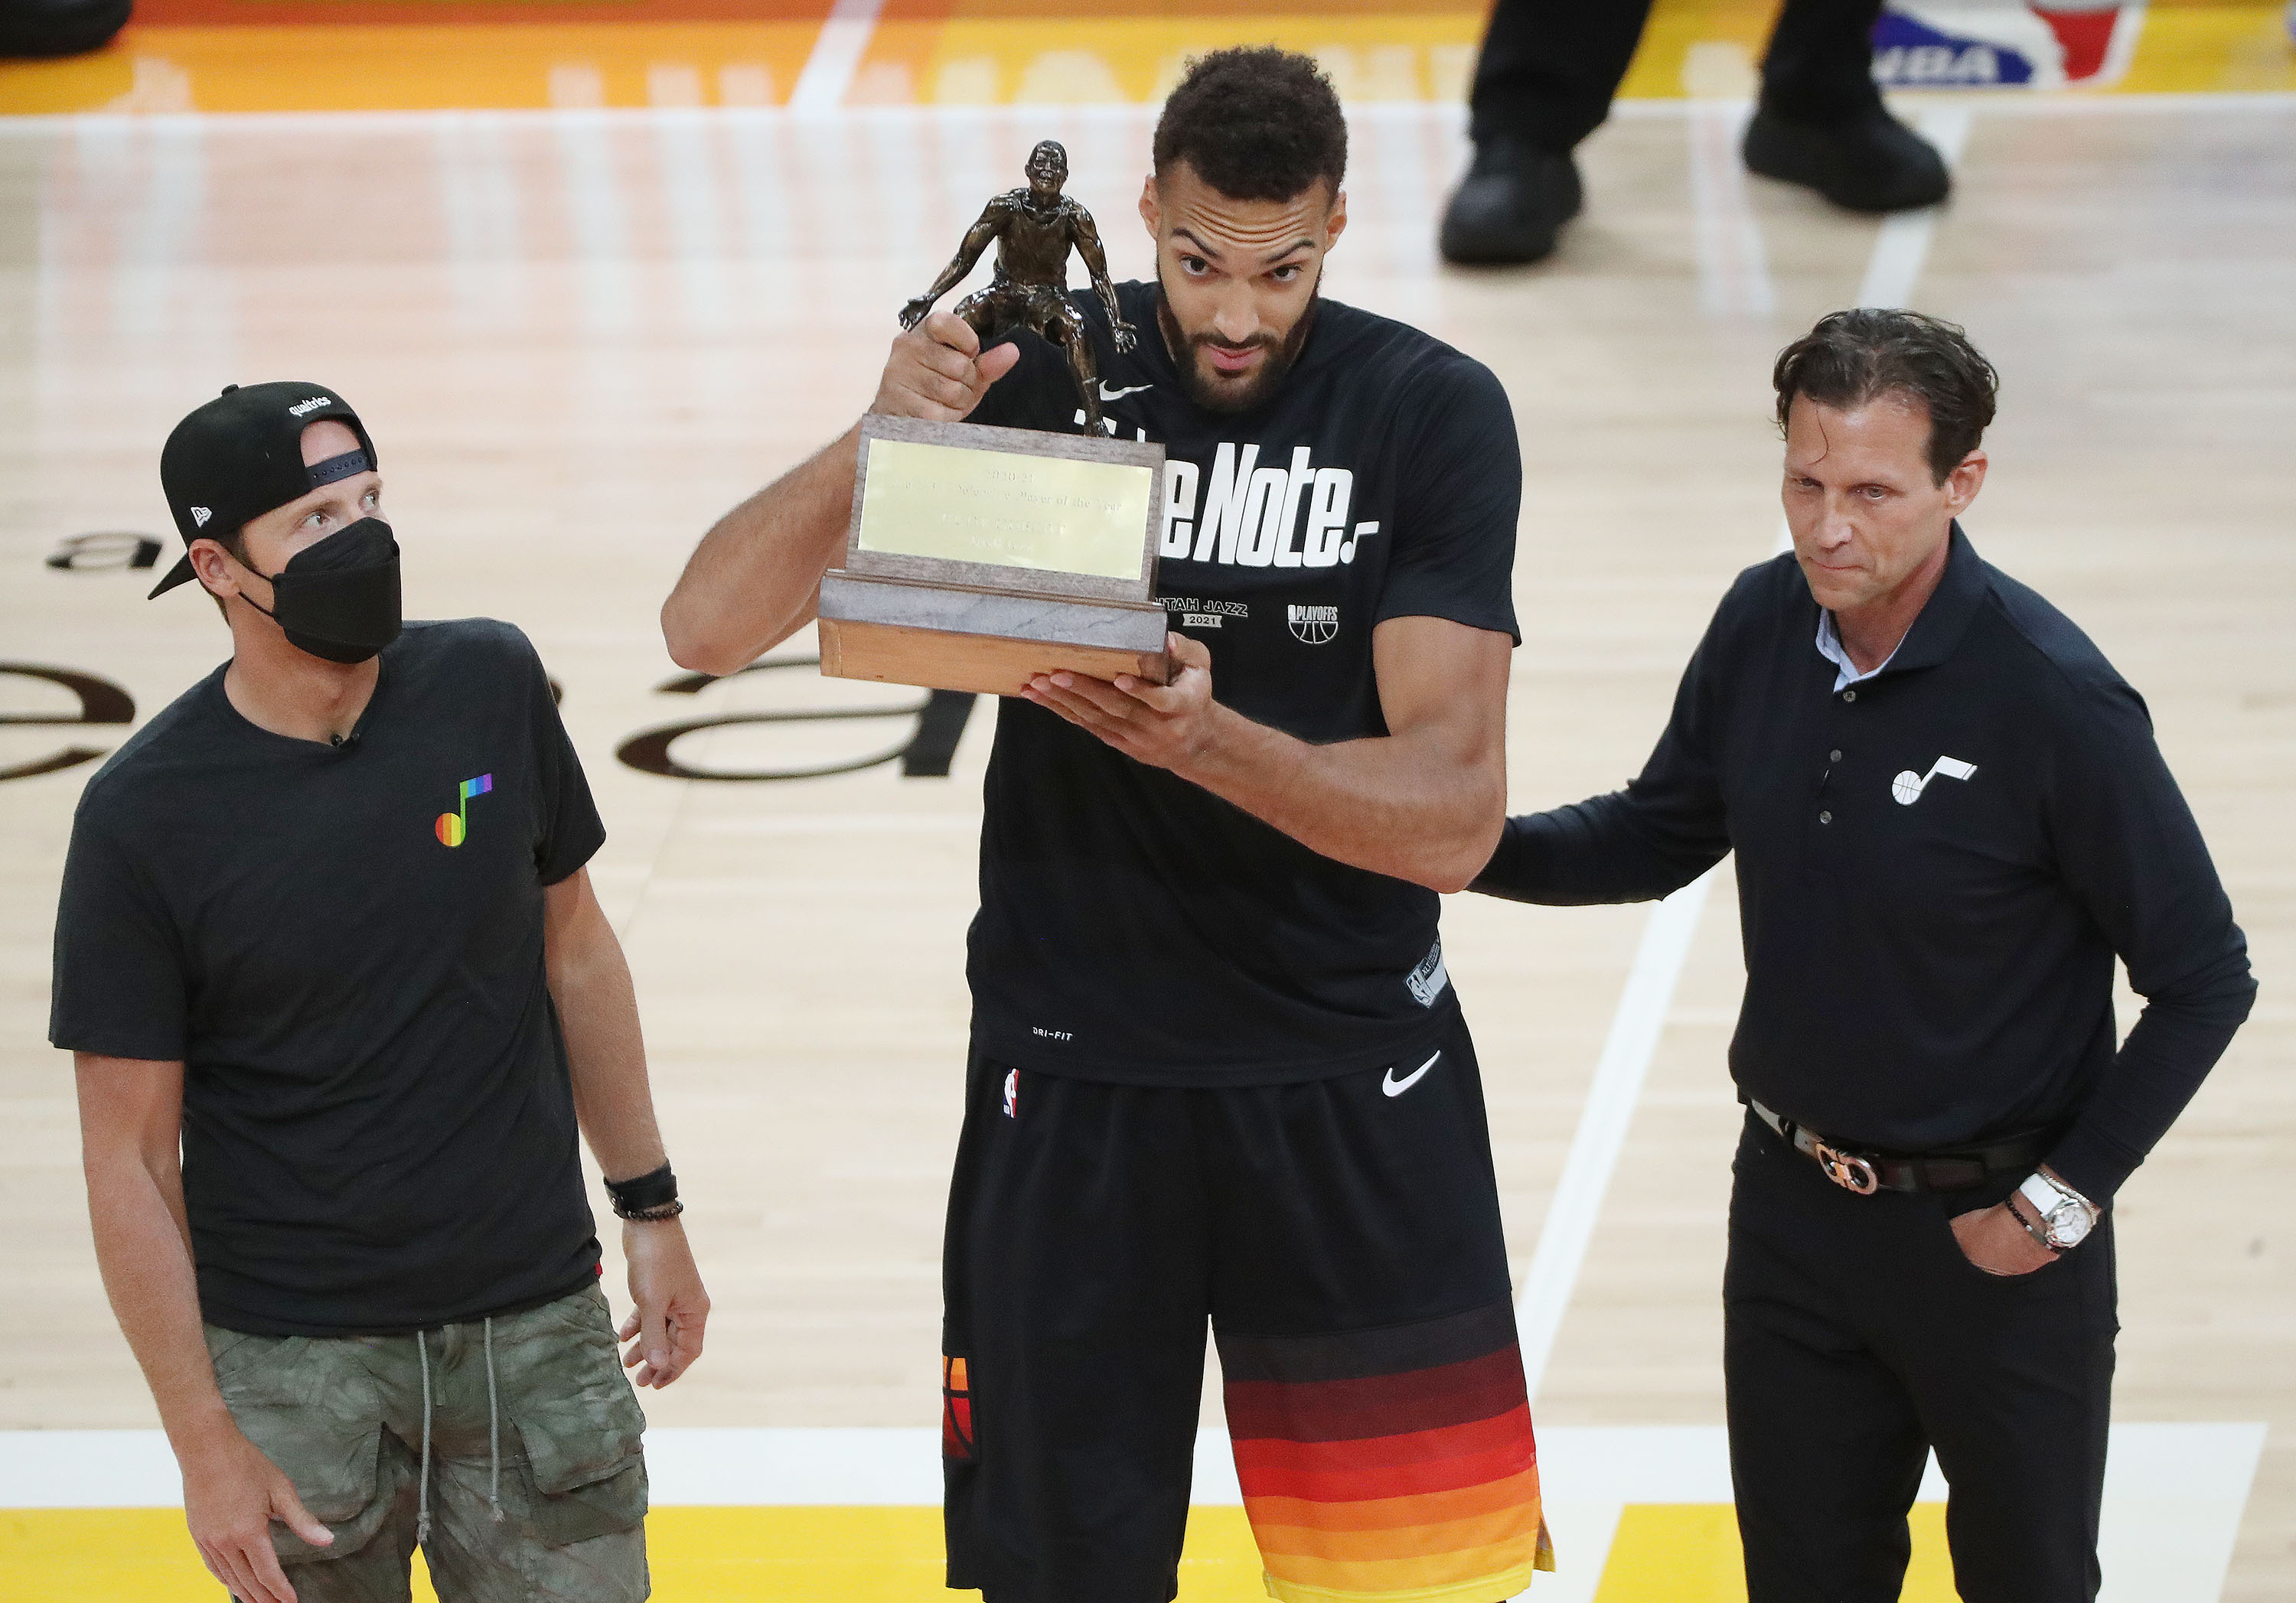 Utah Jazz center Rudy Gobert (27) receives his Defensive player of the Year trophy with Jazz coach Quin Synder and owner Ryan Smith prior to the game in Salt Lake City on Thursday, June 10, 2021. The Jazz won 117-111.